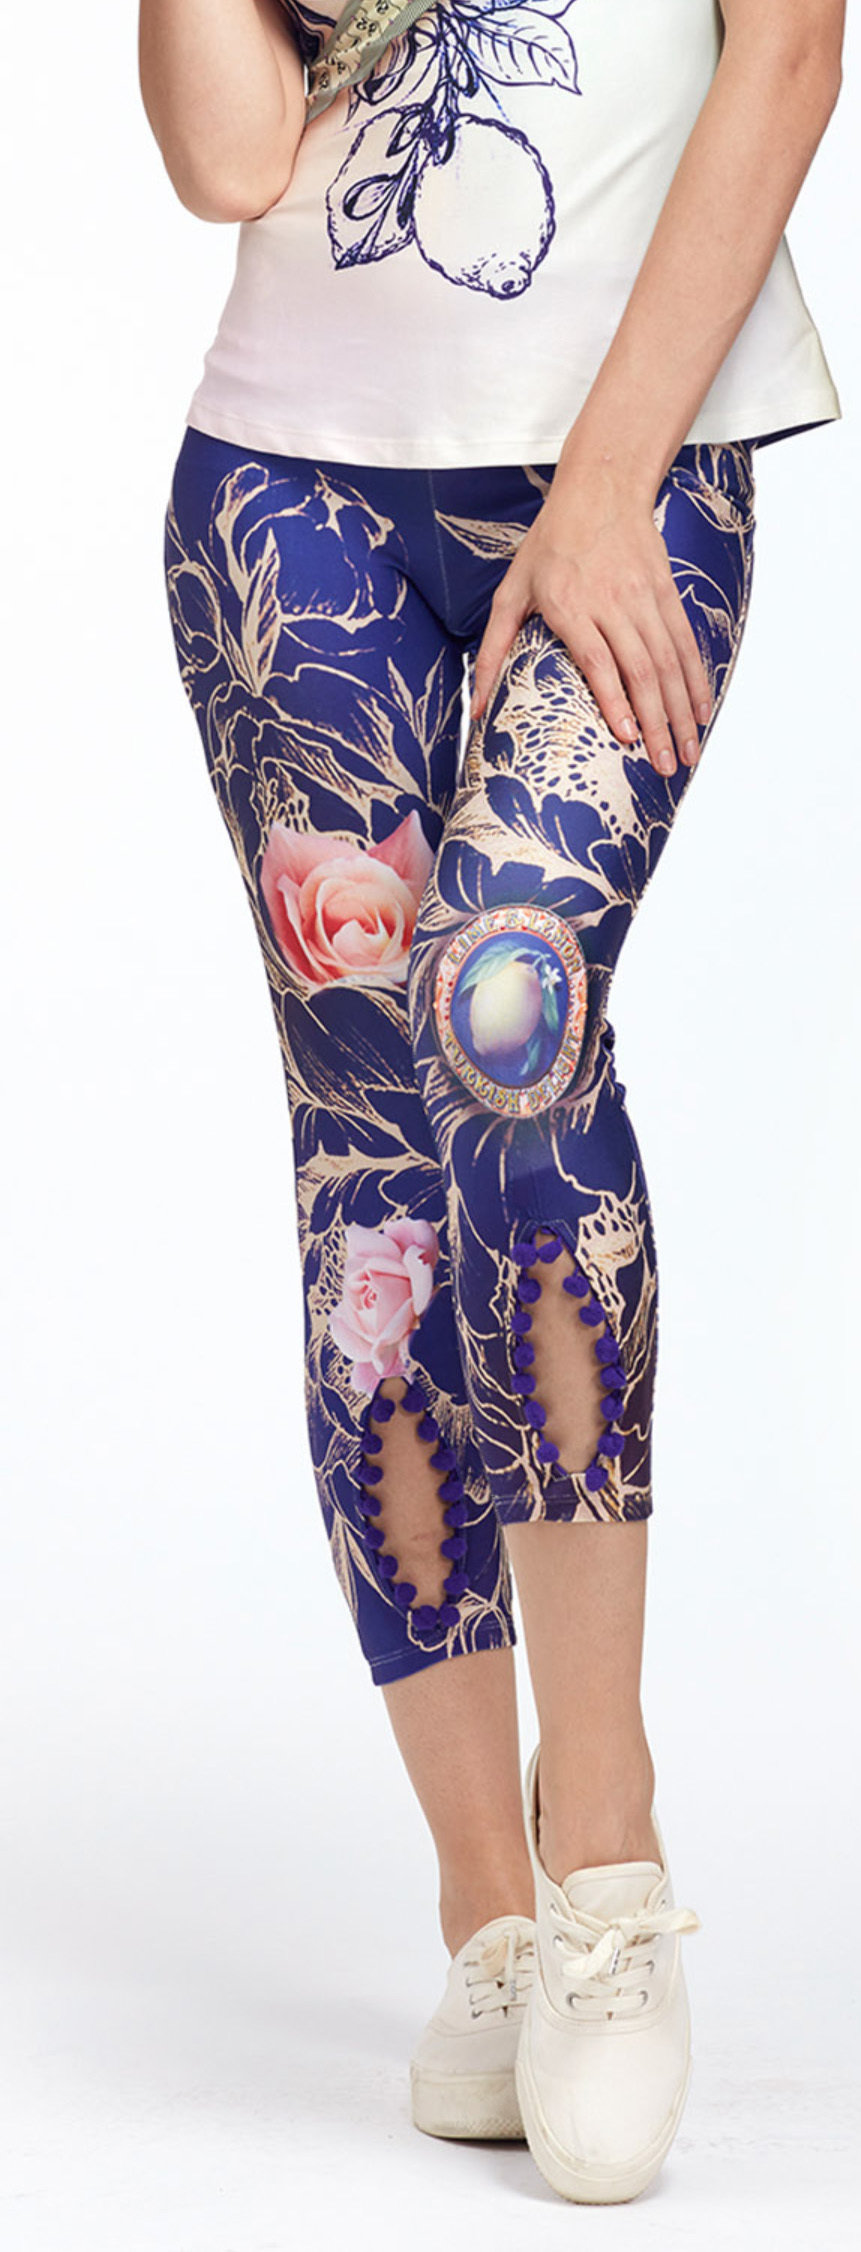 IPNG: Winter Rose Garden Peek-A-Boo Lokoometric Illusion Legging IPNG_LOMI-049